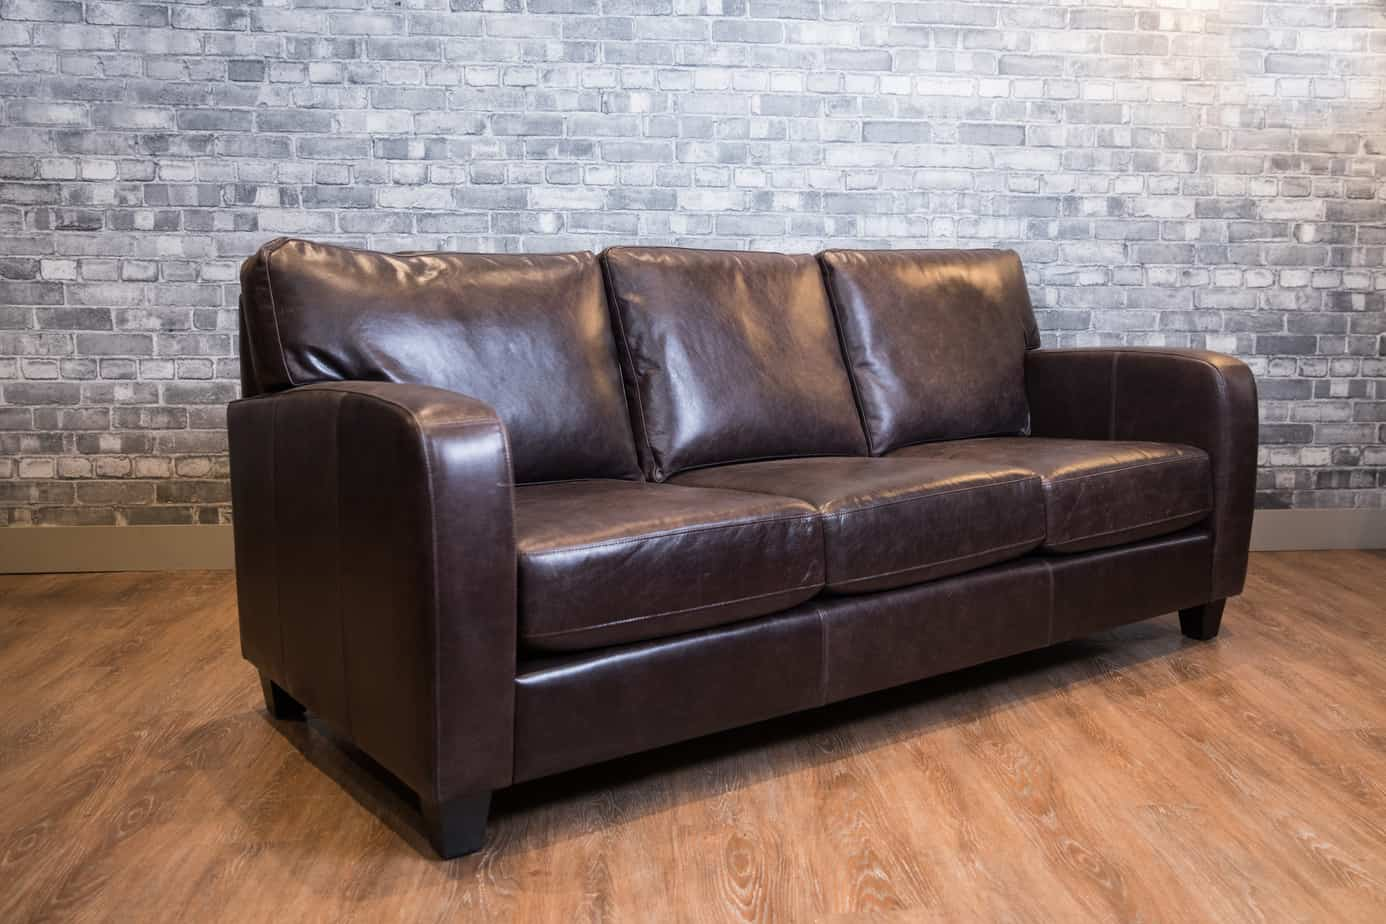 Fantastic The Lake Como Leather Sofa Canadas Boss Leather Sofas And Ncnpc Chair Design For Home Ncnpcorg